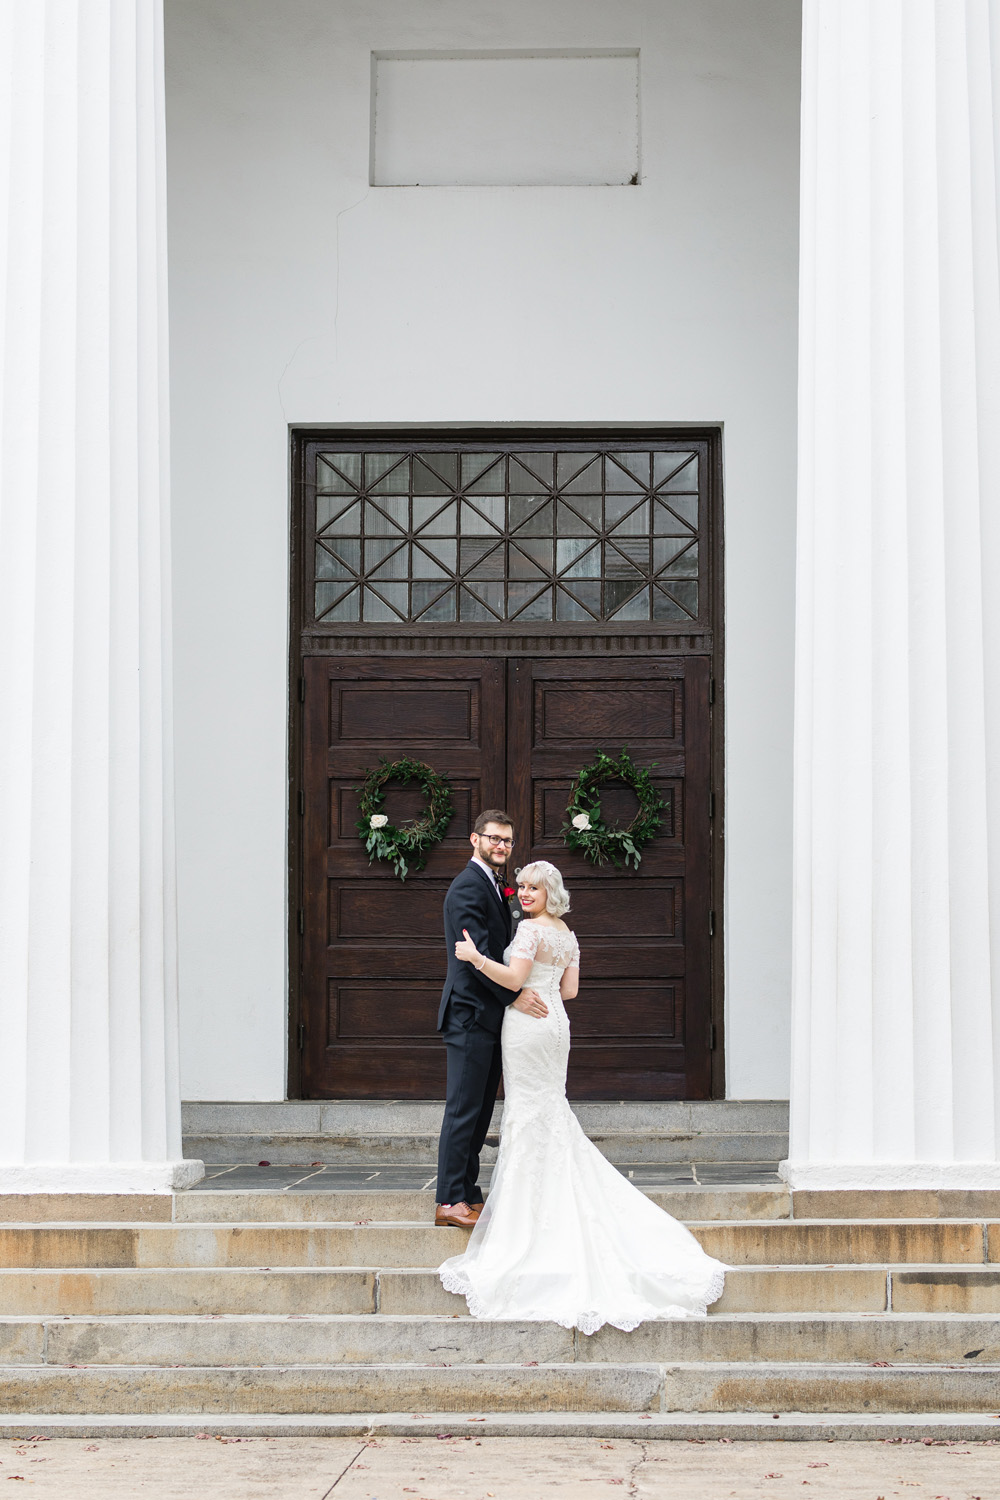 Garter and Whiskey Photography - Athens, Georgia Wedding